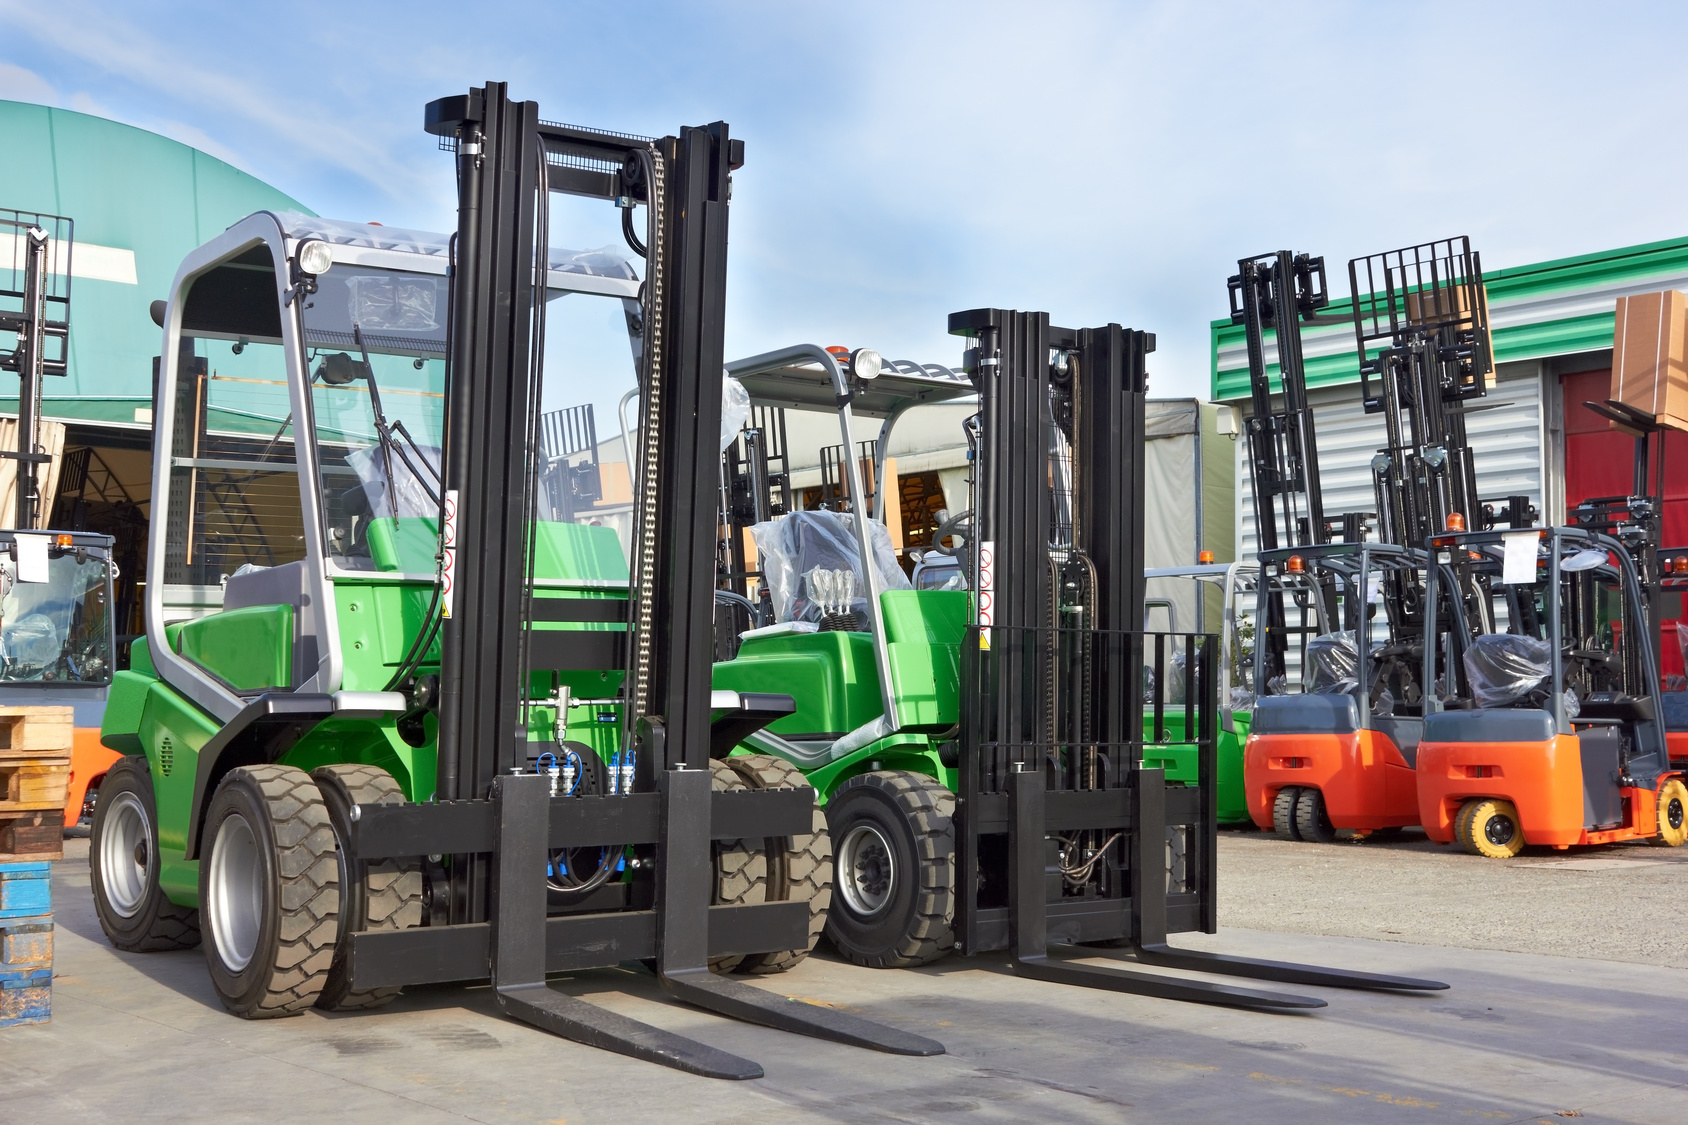 Variety of Forklifts with Differing Capacities